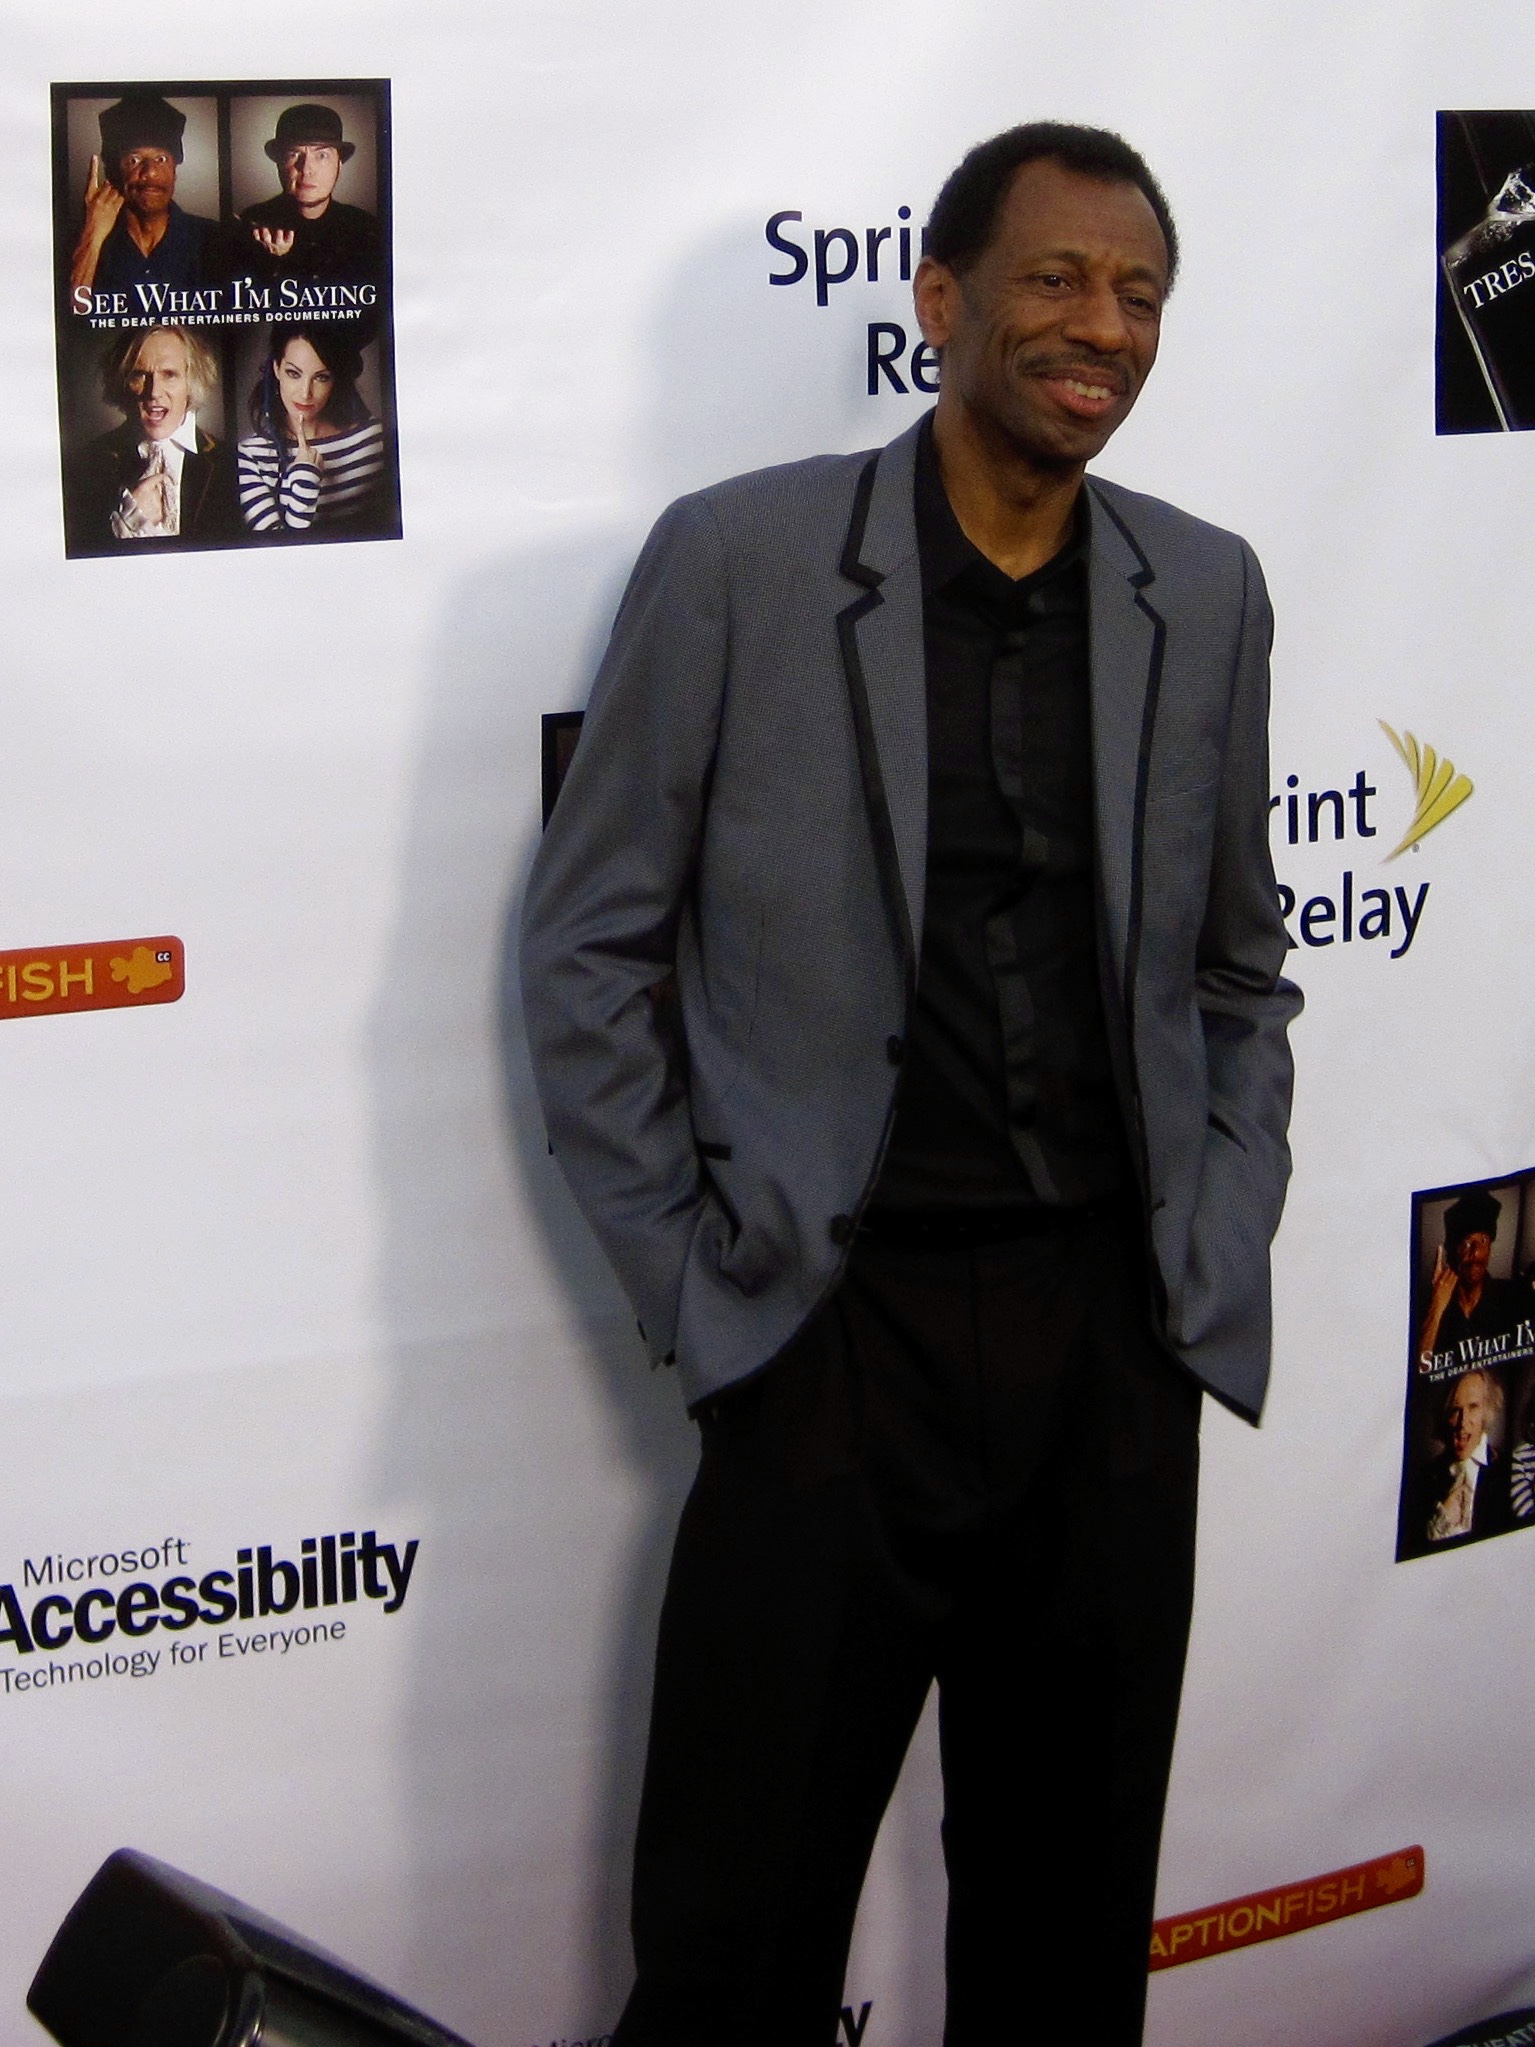 Actor CJ Jones at the Egyptian Theatre for the premiere of Wordplay, Inc.'s feature documentary  See What I'm Saying , directed by Hilari Scarl.  Photo by John Drouillard.